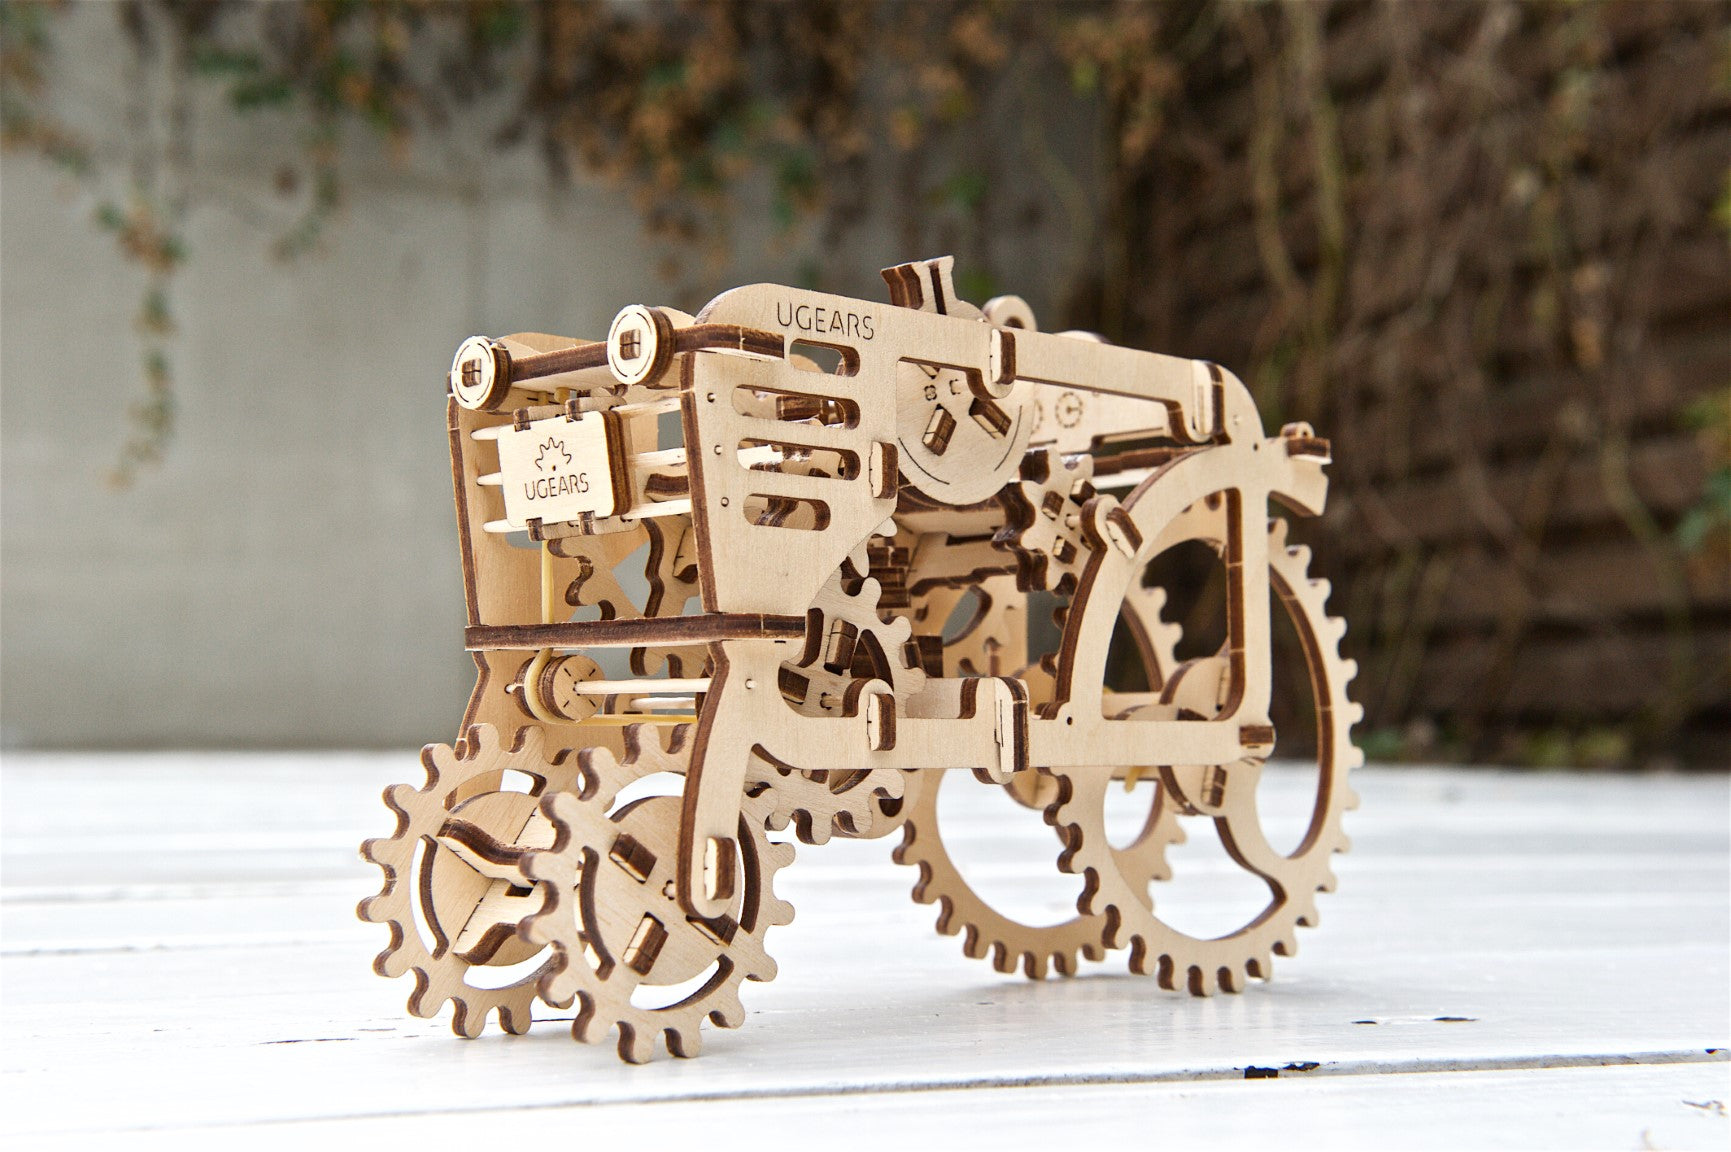 ugears trattore